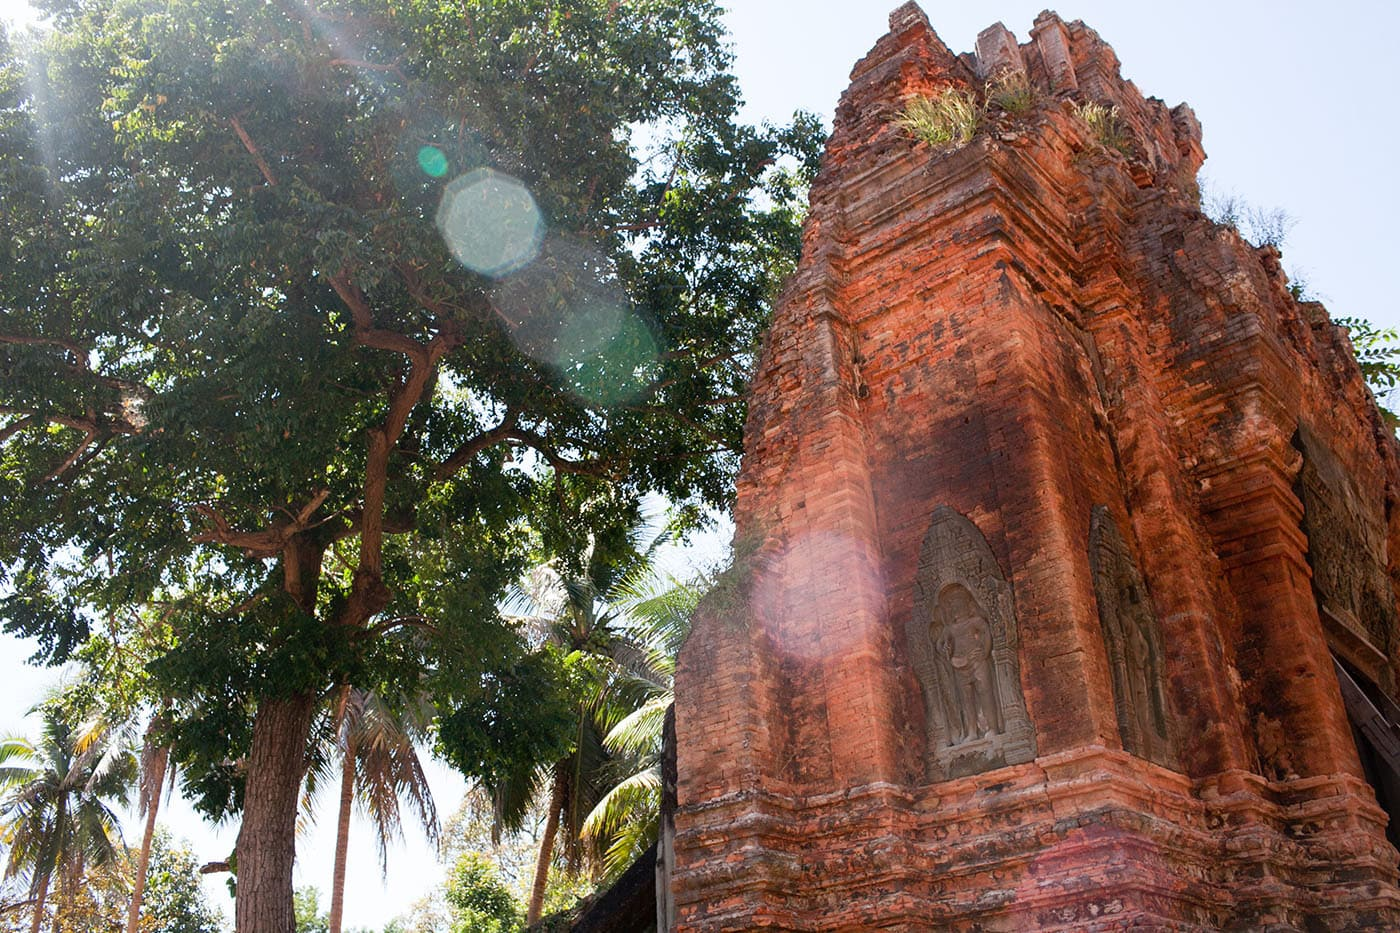 Photos from the temples of Angkor Wat, Cambodia